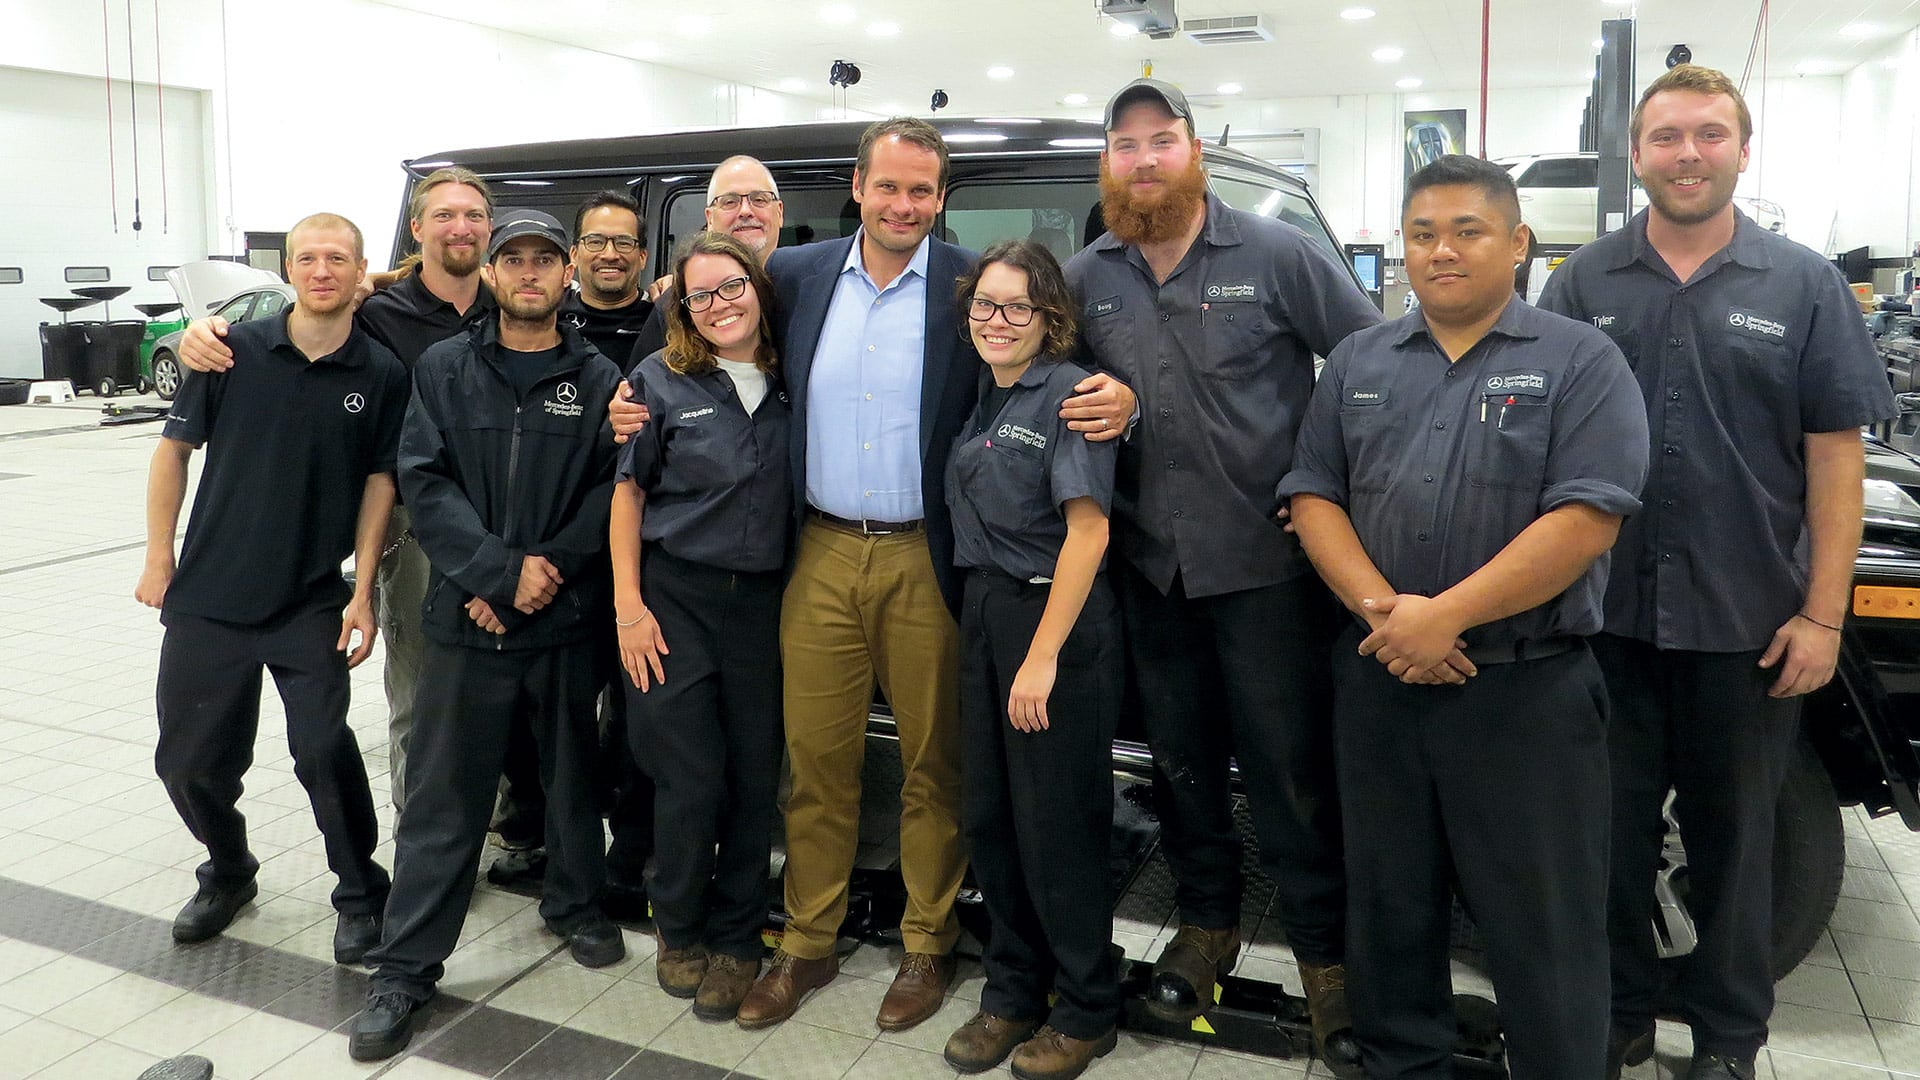 Peter Wirth, seen here with members of the service team at Mercedes-Benz of Springfield